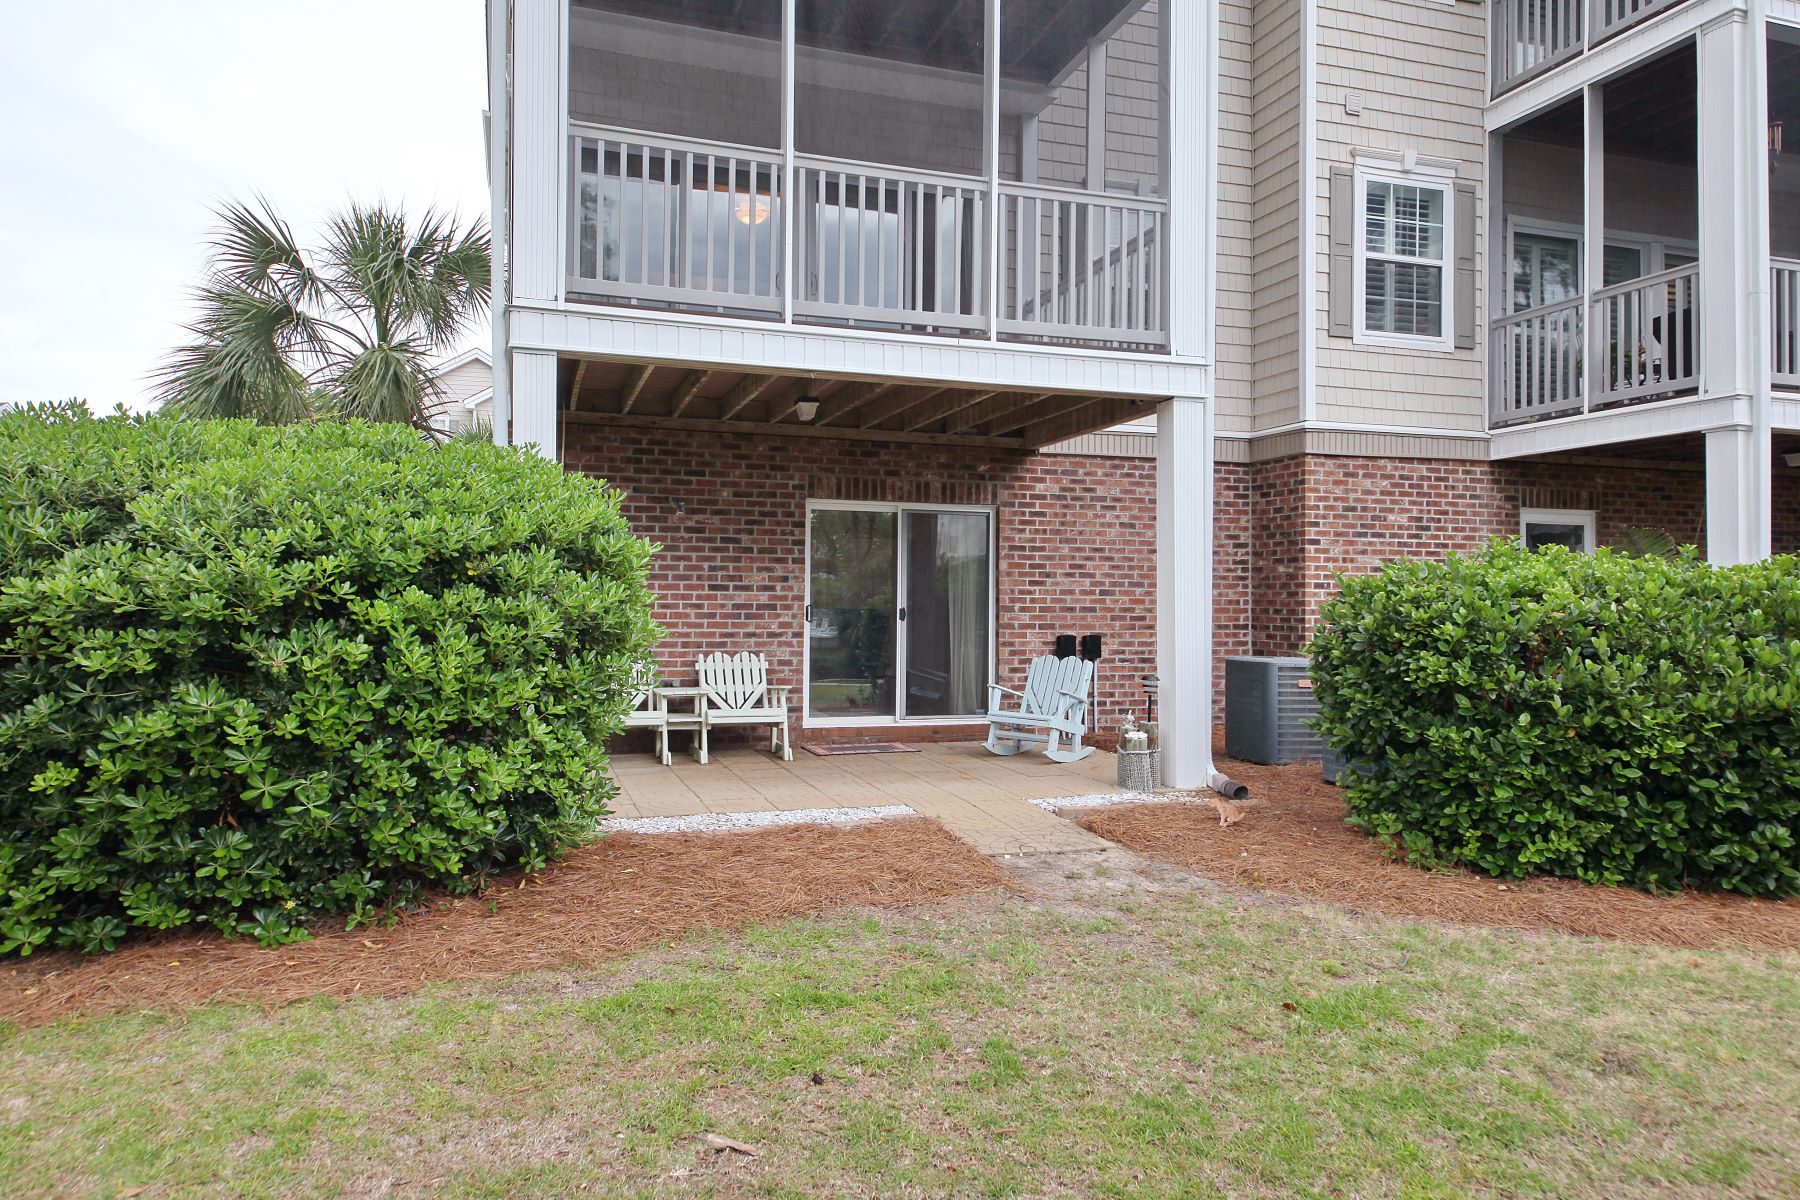 townhouses for Sale at Amenity-Rich Townhome in North Myrtle Beach 601 Hillside Dr N #1106 North Myrtle Beach, South Carolina 29582 United States